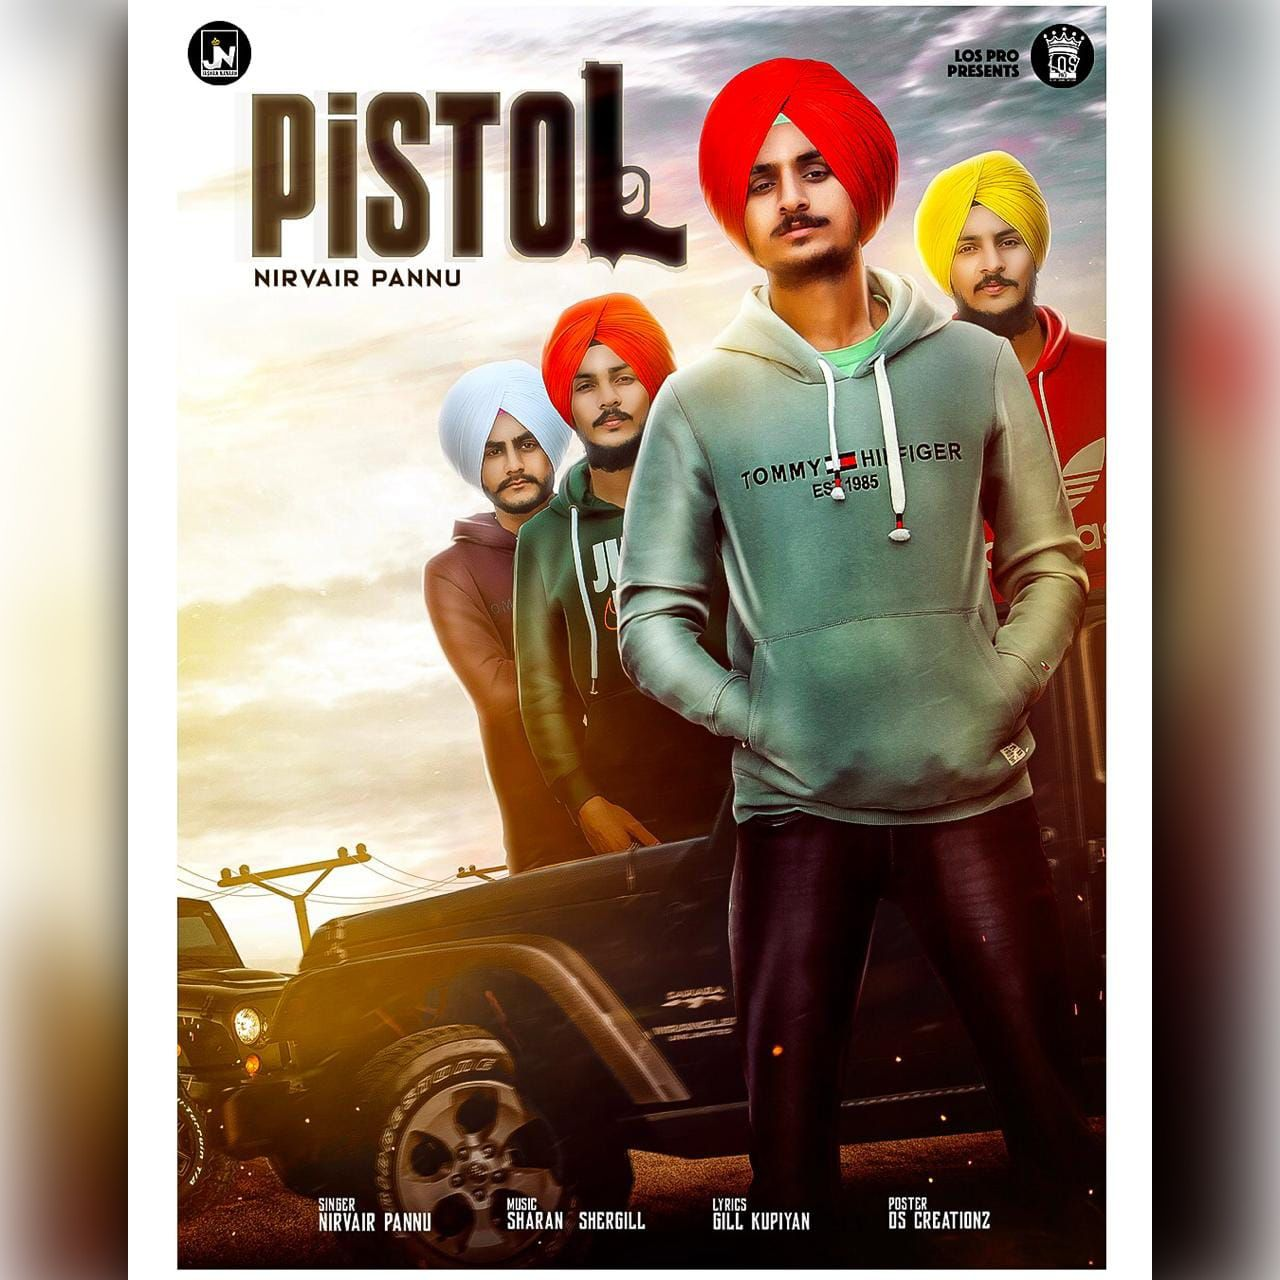 Pistol By Nirvair Pannu Download Mp3 Download Free Music Music